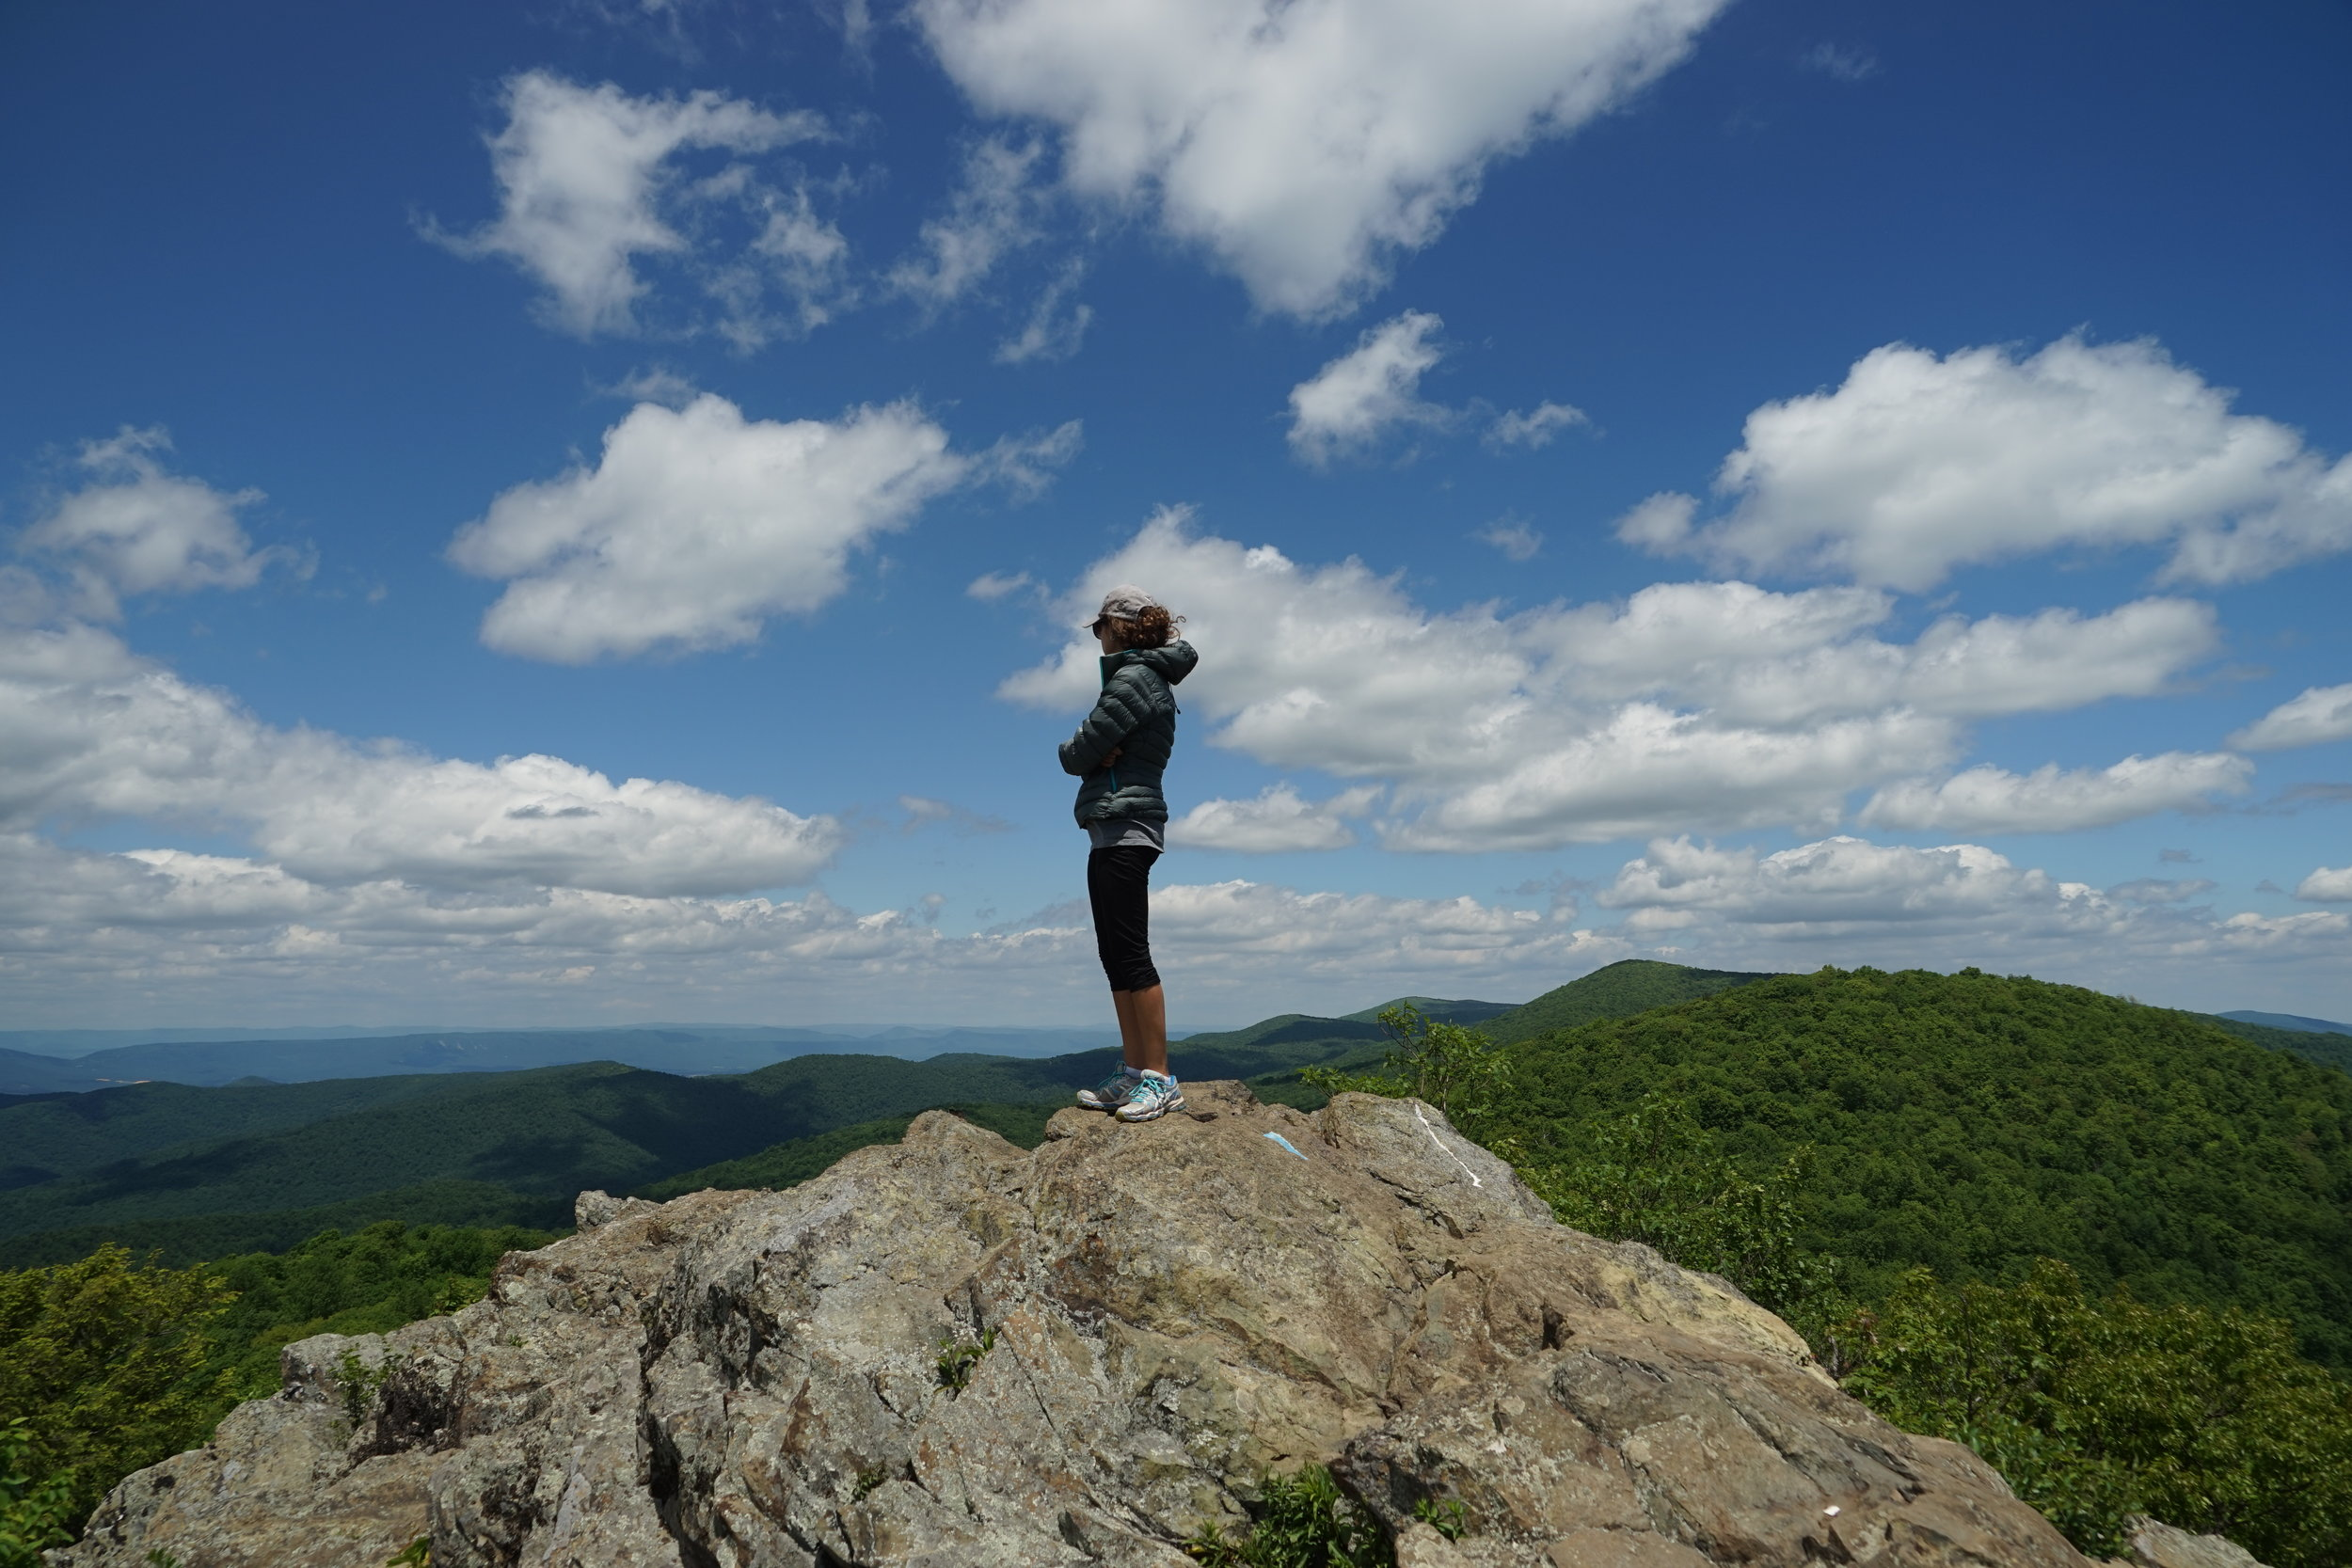 Hike to   Bearfence Mountain  , Shenandoah National Park